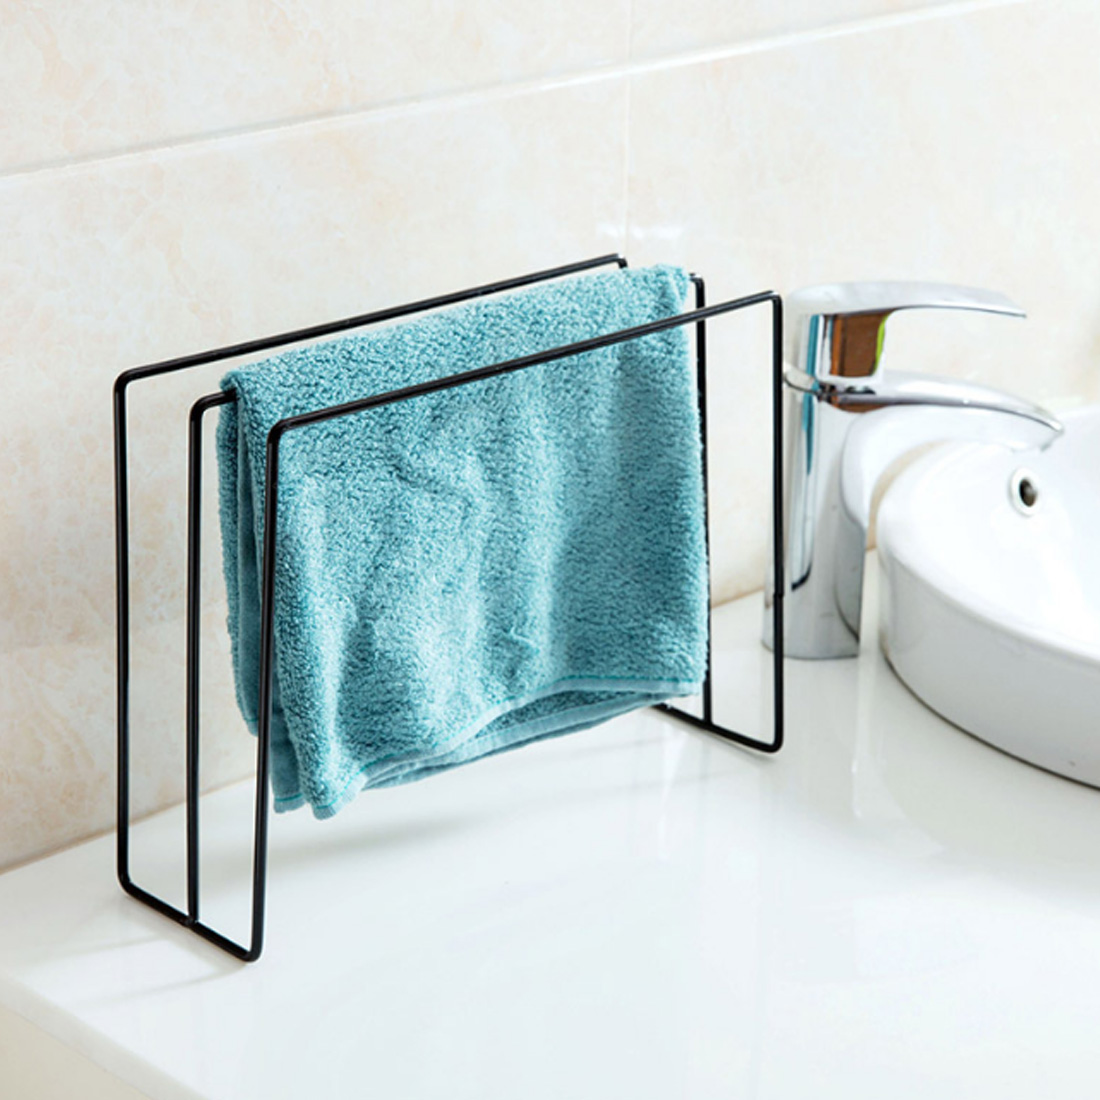 Storage Rack Three dimensional Iron Art Rag Hanger Bath Towel Holder ...